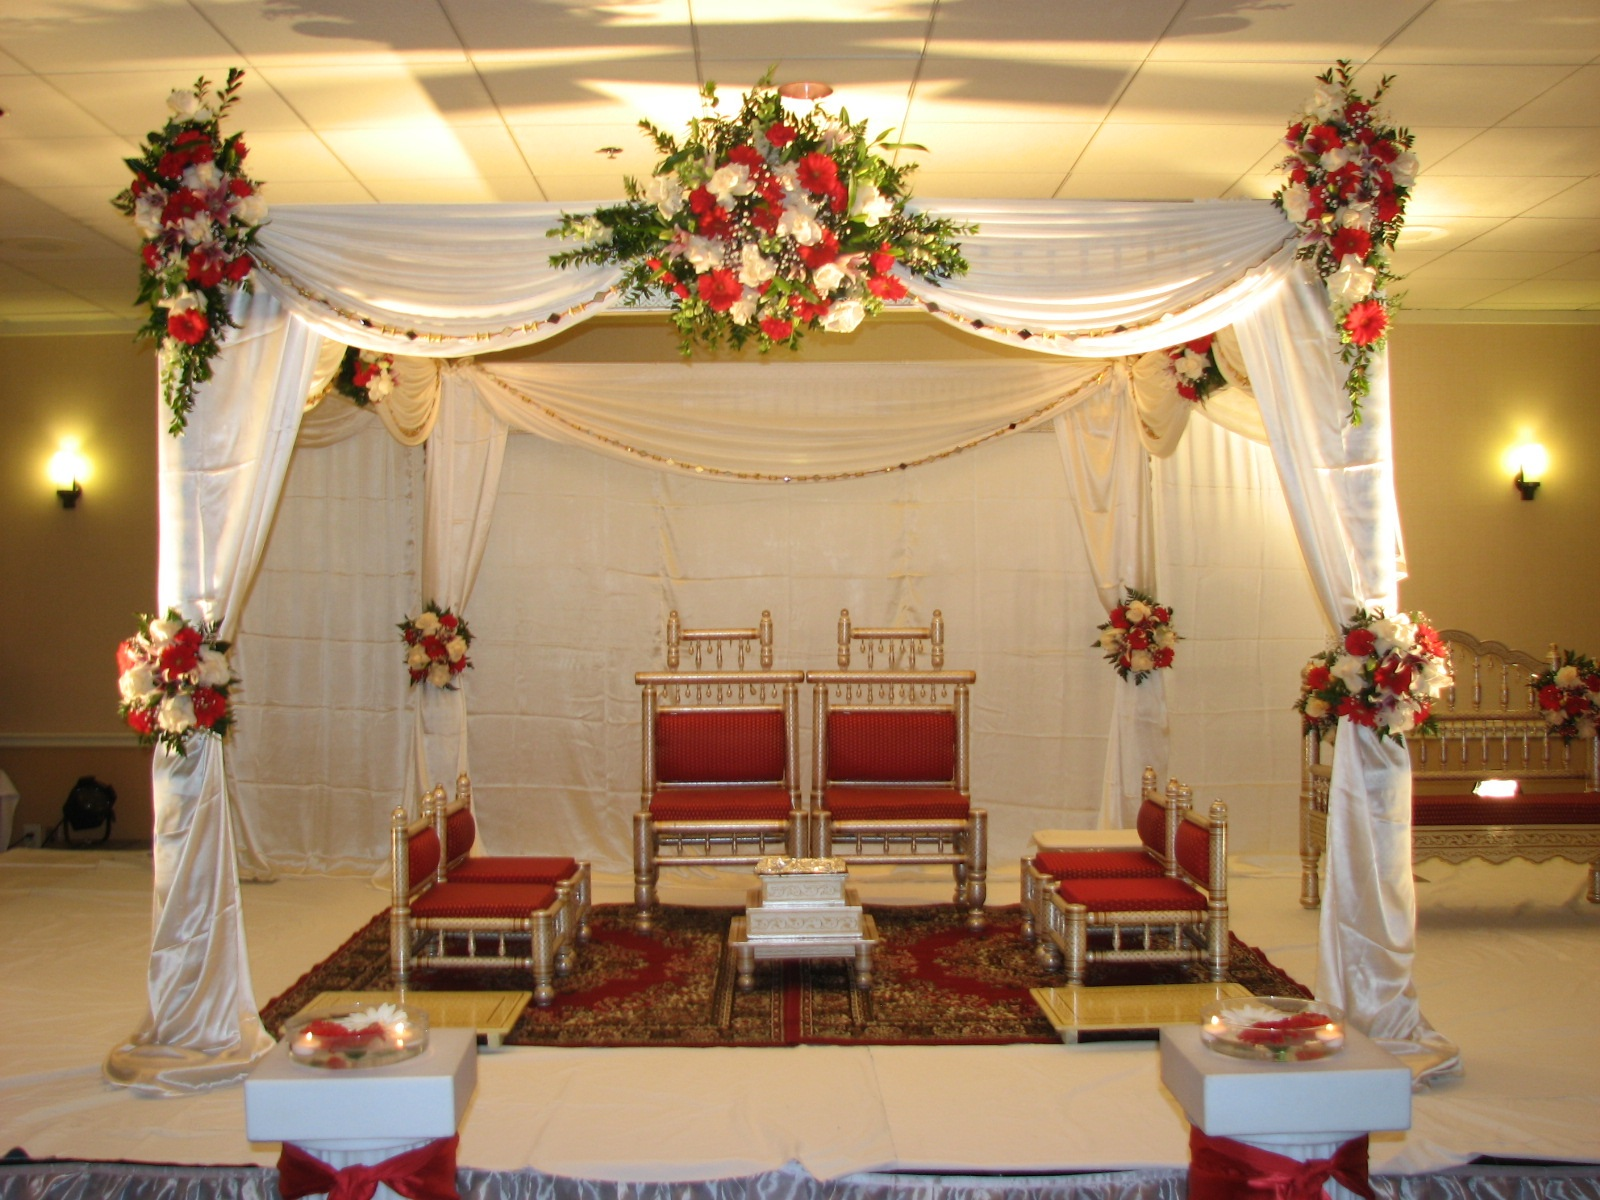 Indian wedding decorations tampa tampa bay wedding florist Simple flower decoration ideas